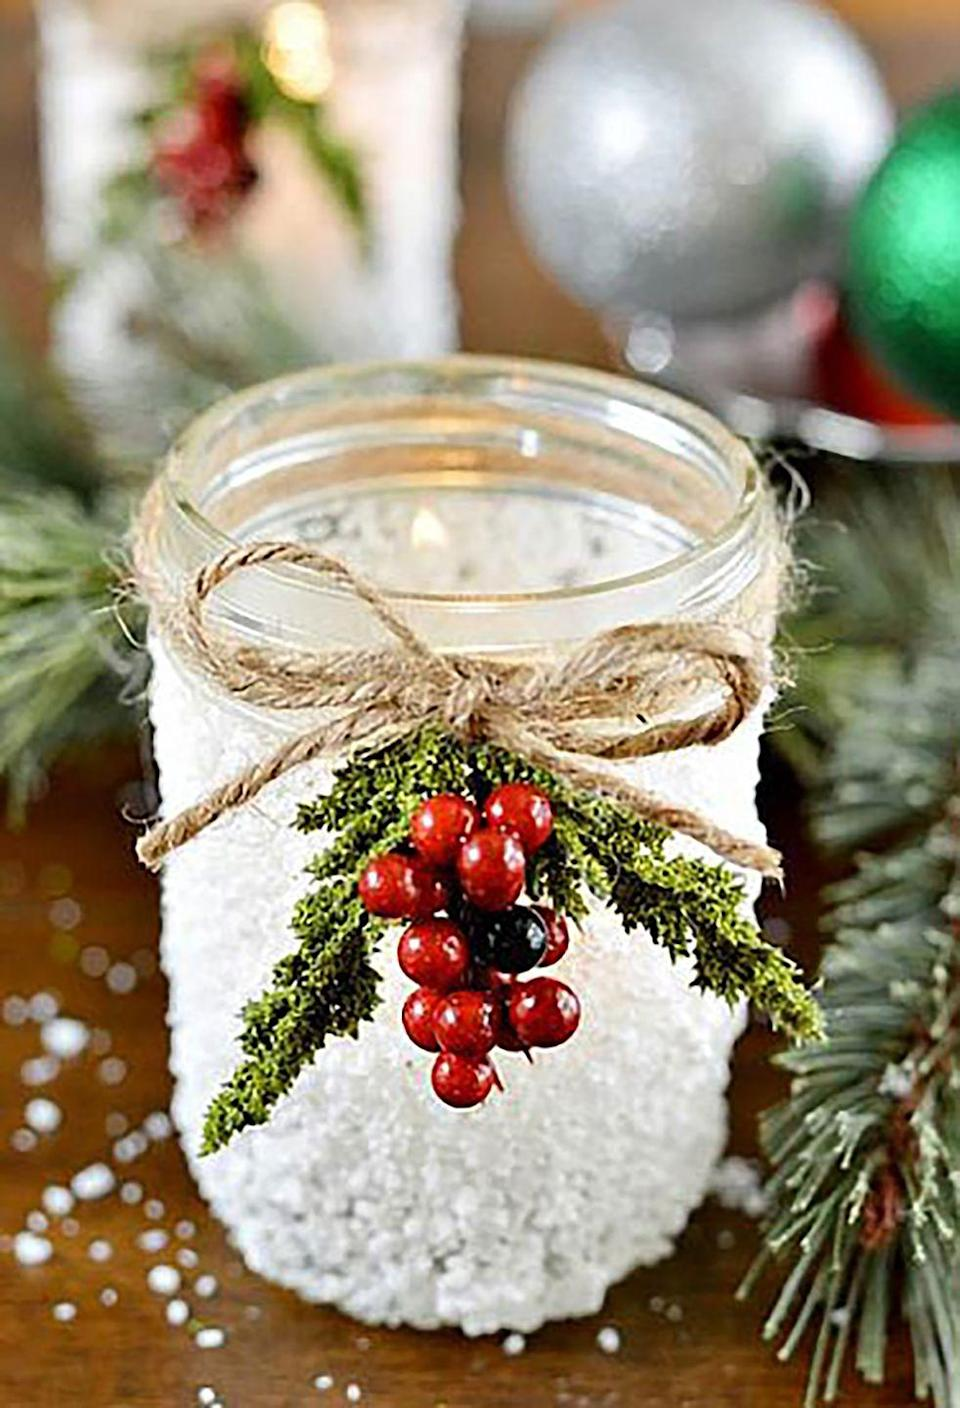 """<p>Align several of these handmade votives—tied with berries and twine—in the center of your dining table to create an elegant centerpiece. </p><p><strong>Get the tutorial at <a href=""""http://www.decoart.com/blog/project/89/snowy_mason_jar"""" rel=""""nofollow noopener"""" target=""""_blank"""" data-ylk=""""slk:DecoArt"""" class=""""link rapid-noclick-resp"""">DecoArt</a>.</strong></p><p><a class=""""link rapid-noclick-resp"""" href=""""https://www.amazon.com/TIAMALL-Natural-Twine-String-Packing/dp/B01HEPXEE2/?tag=syn-yahoo-20&ascsubtag=%5Bartid%7C10050.g.2132%5Bsrc%7Cyahoo-us"""" rel=""""nofollow noopener"""" target=""""_blank"""" data-ylk=""""slk:SHOP TWINE"""">SHOP TWINE</a></p>"""